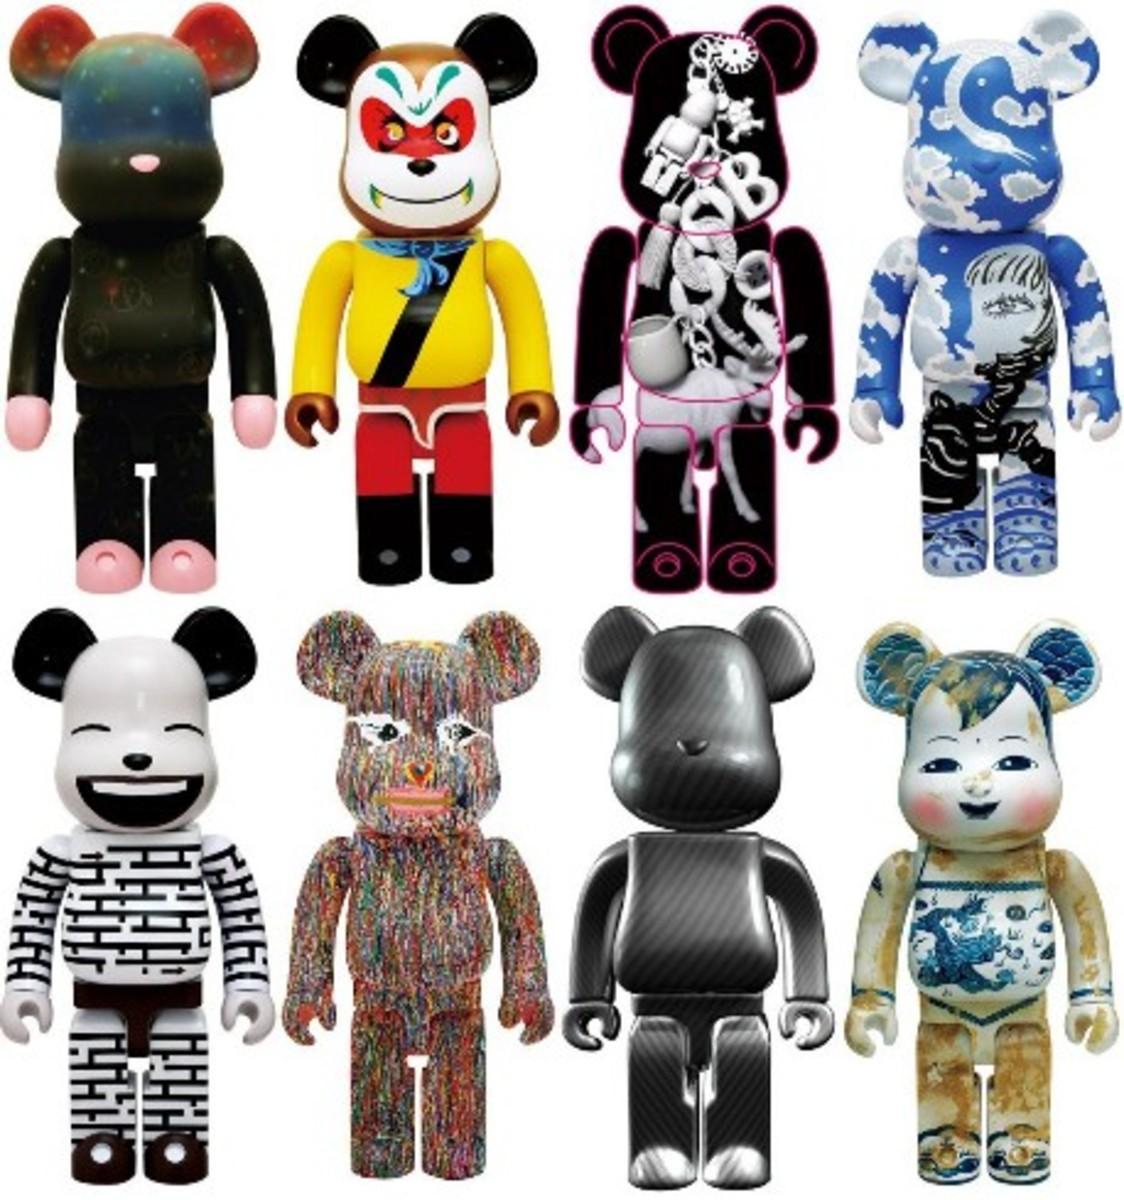 MEDICOM TOY x Chinese Artists - 1000% BE@RBRICK - 0